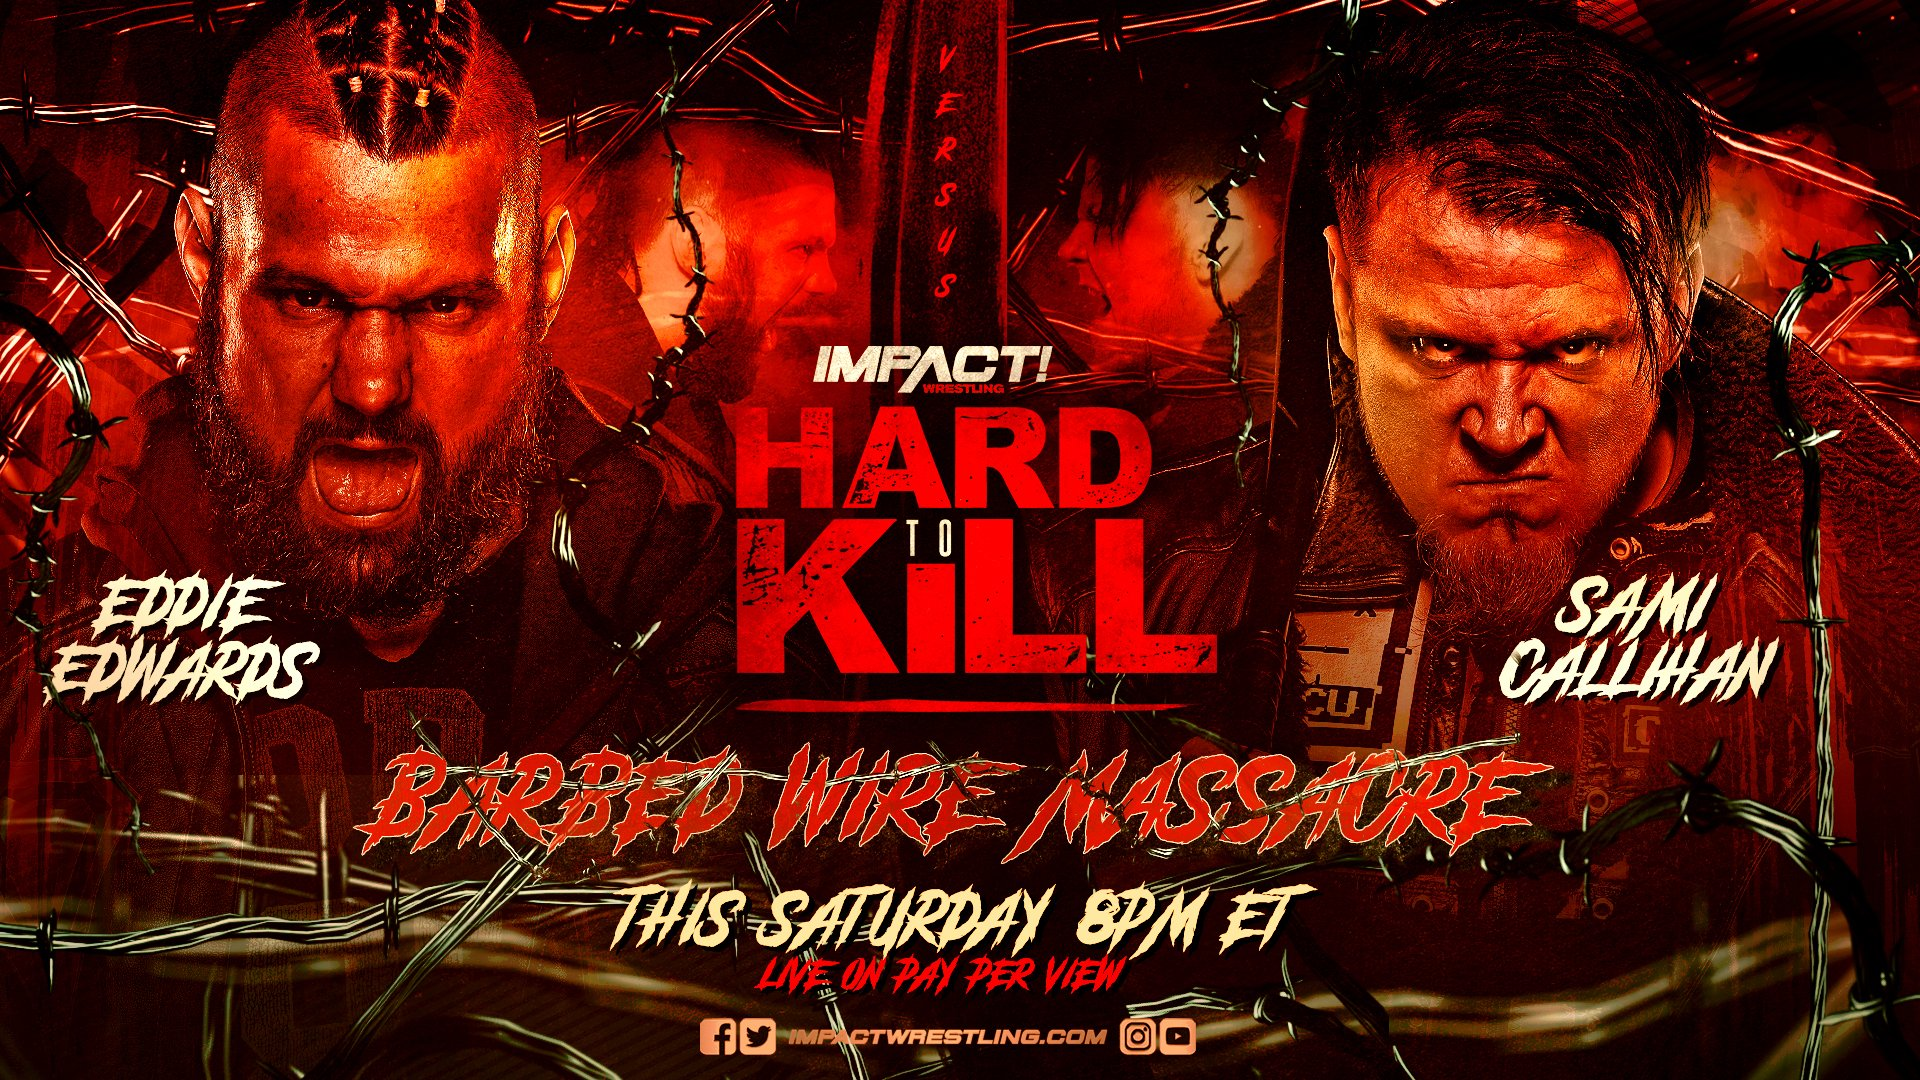 Hard to Kill Eddie Edwards Sami Callihan